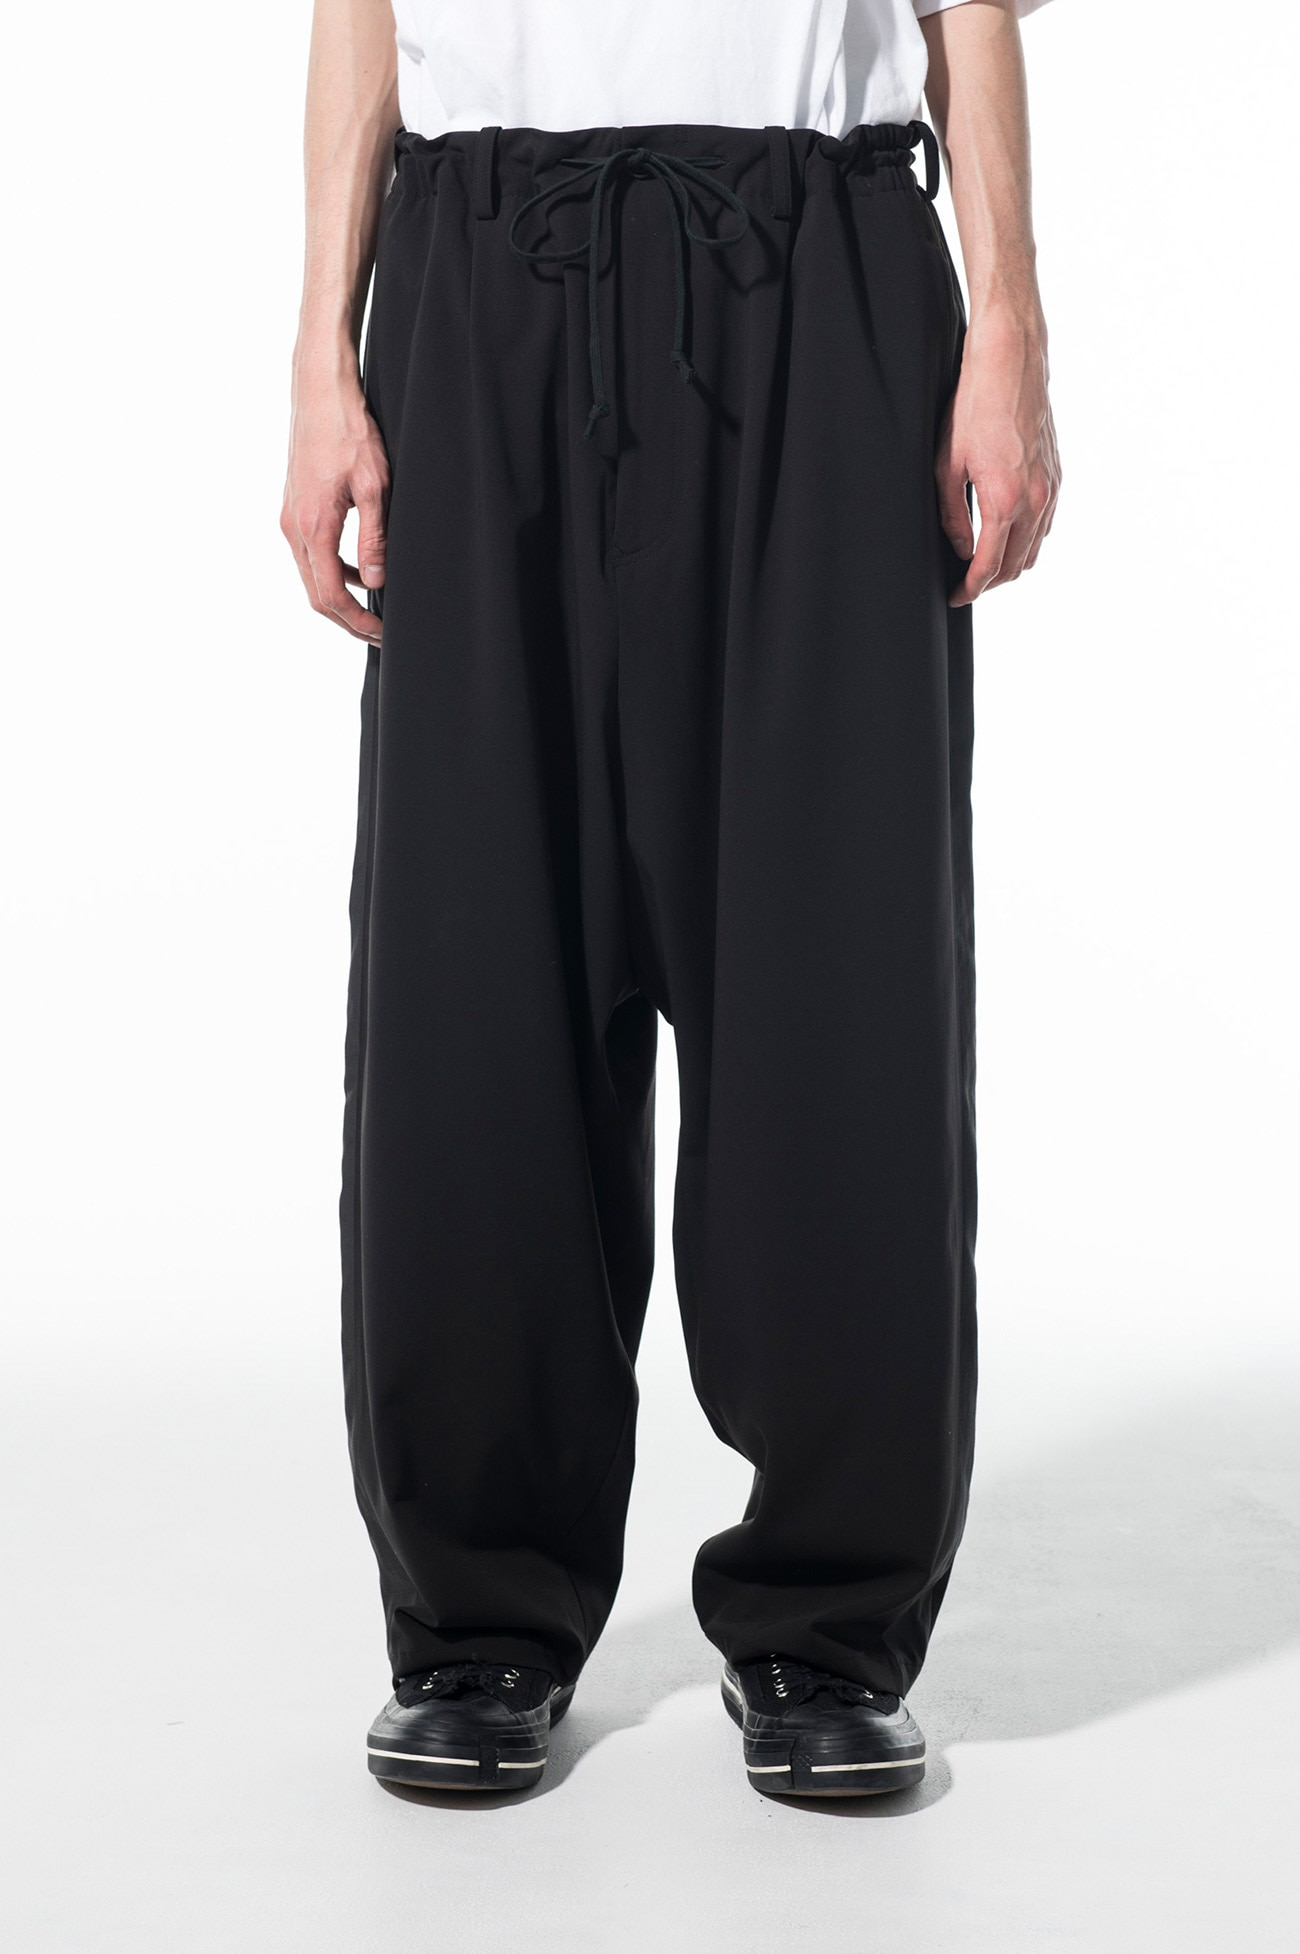 Pe/Rayon Gabardine Stretch One-tuck side tape extra-thick Sarouel pants